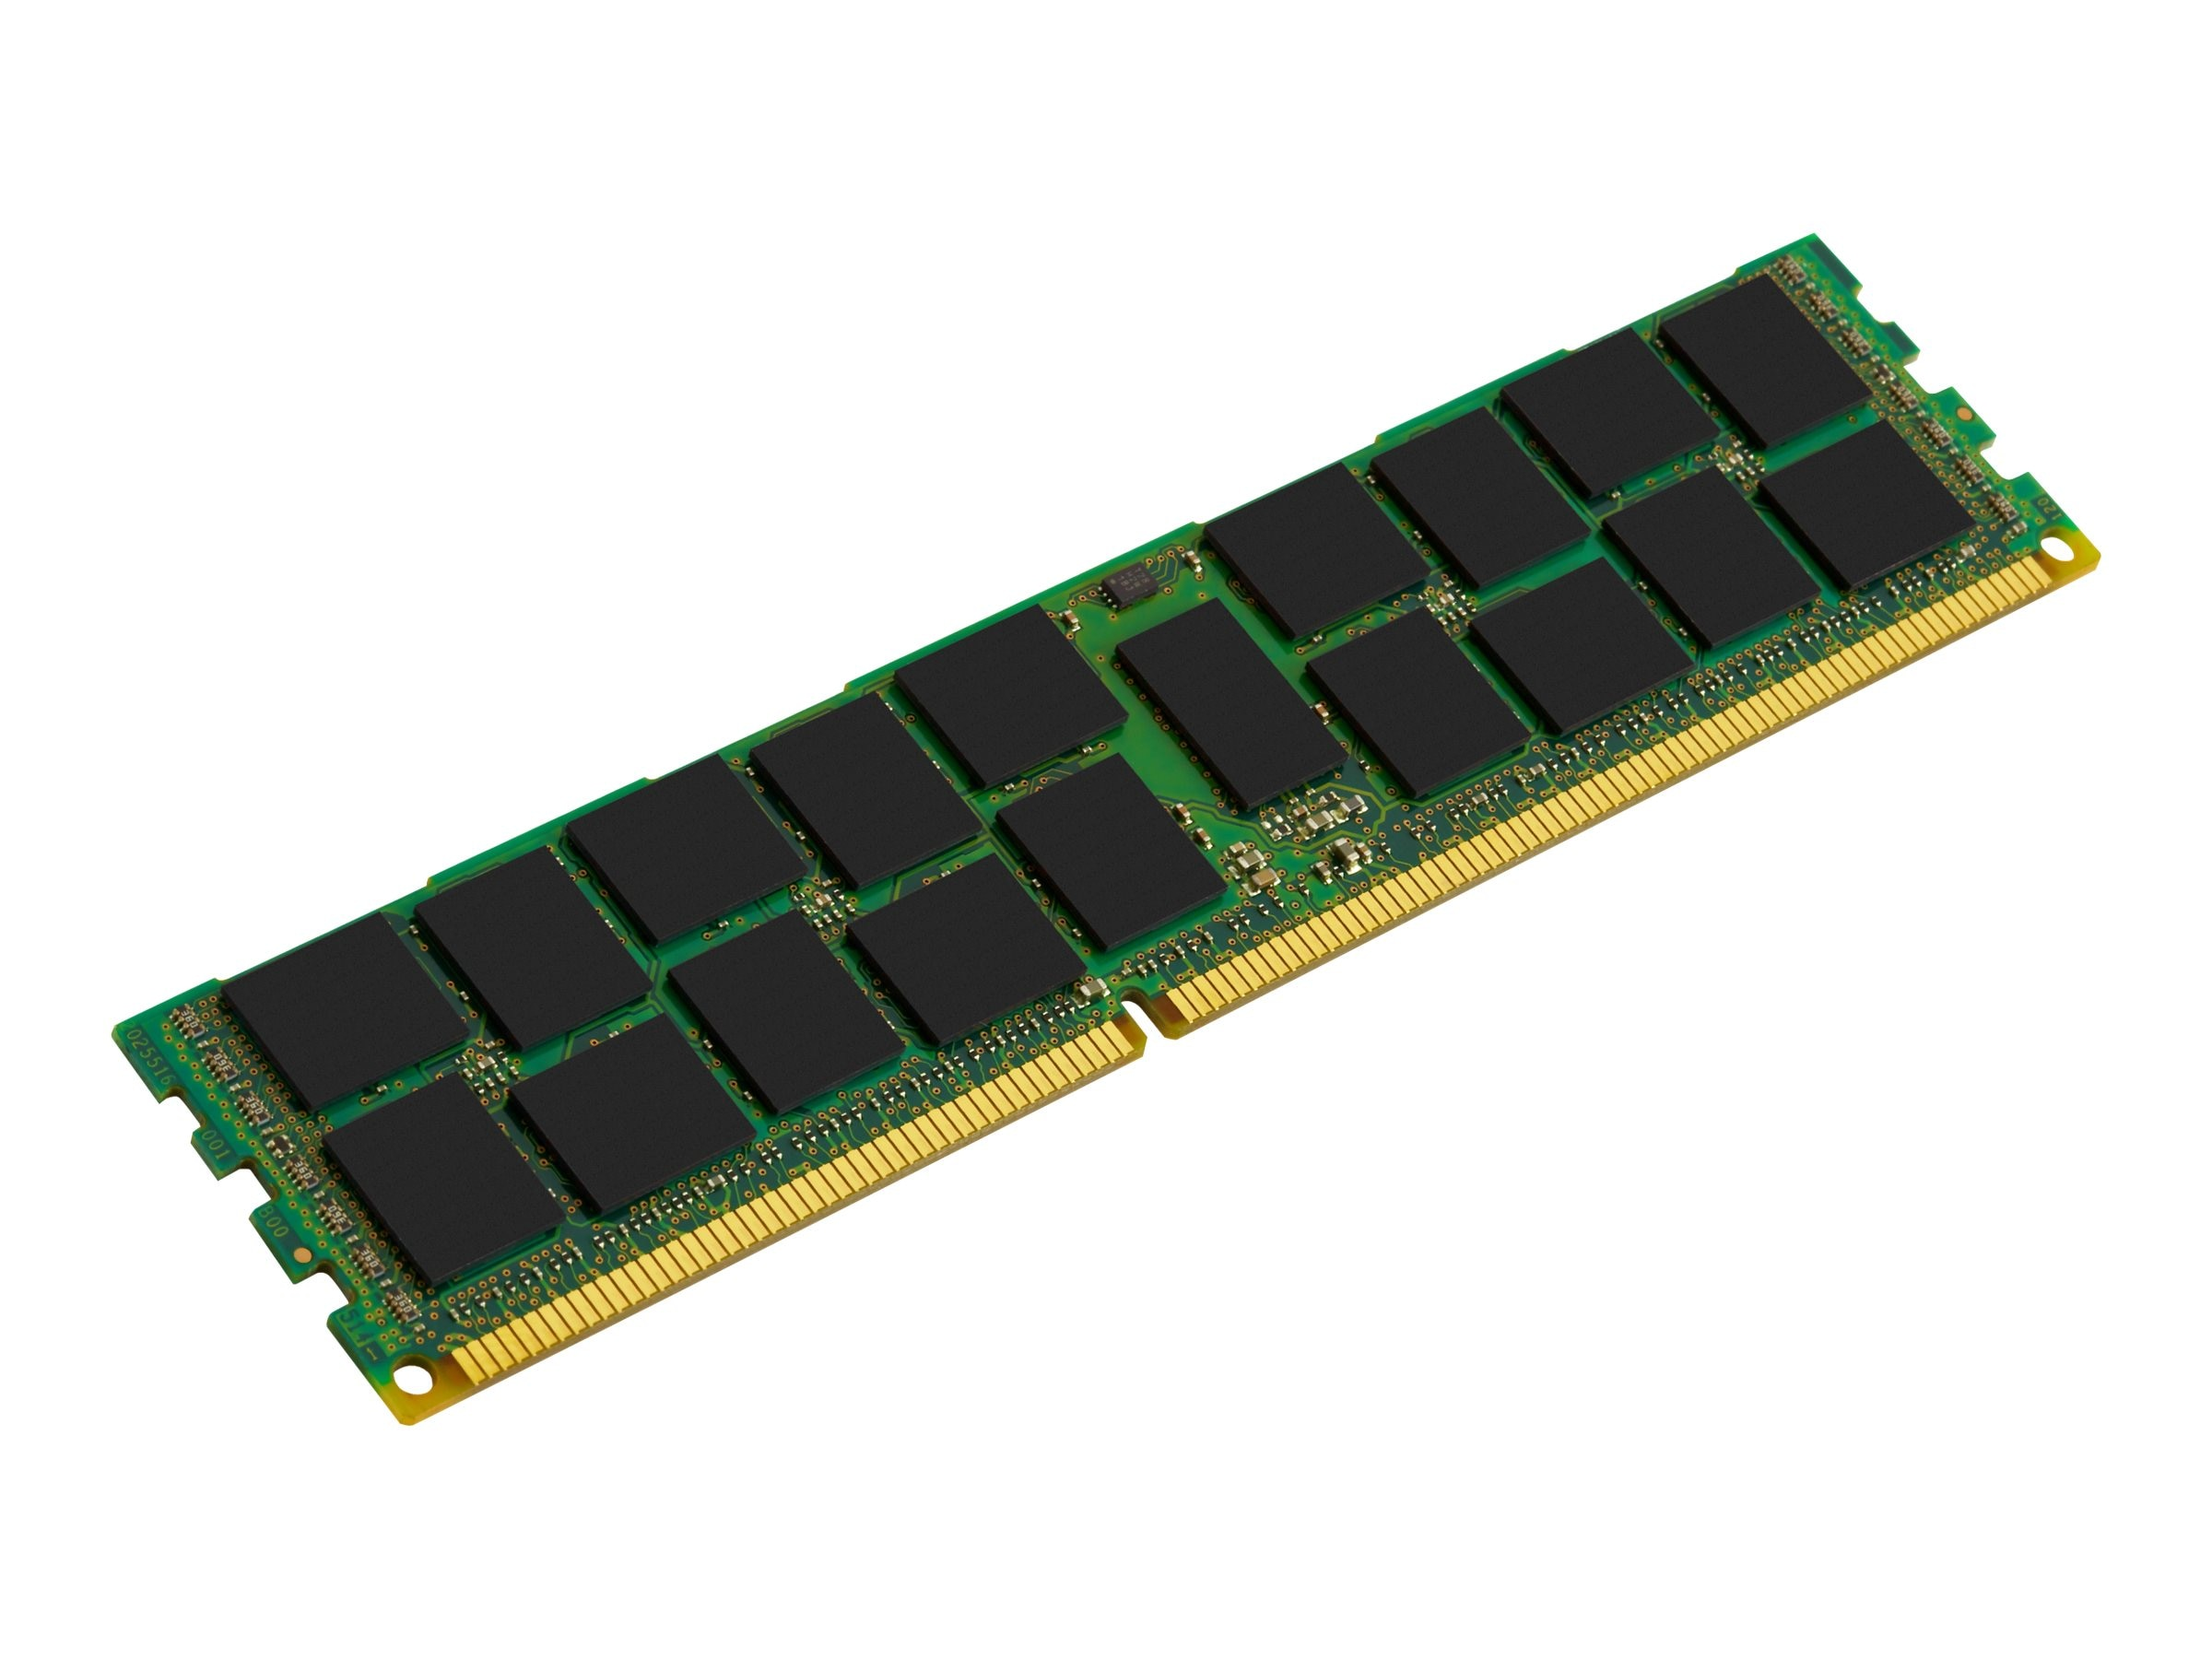 Kingston 16GB PC3-12800 240-pin DDR3 SDRAM RDIMM for Select Models, KTH-PL316LV/16G, 16014677, Memory